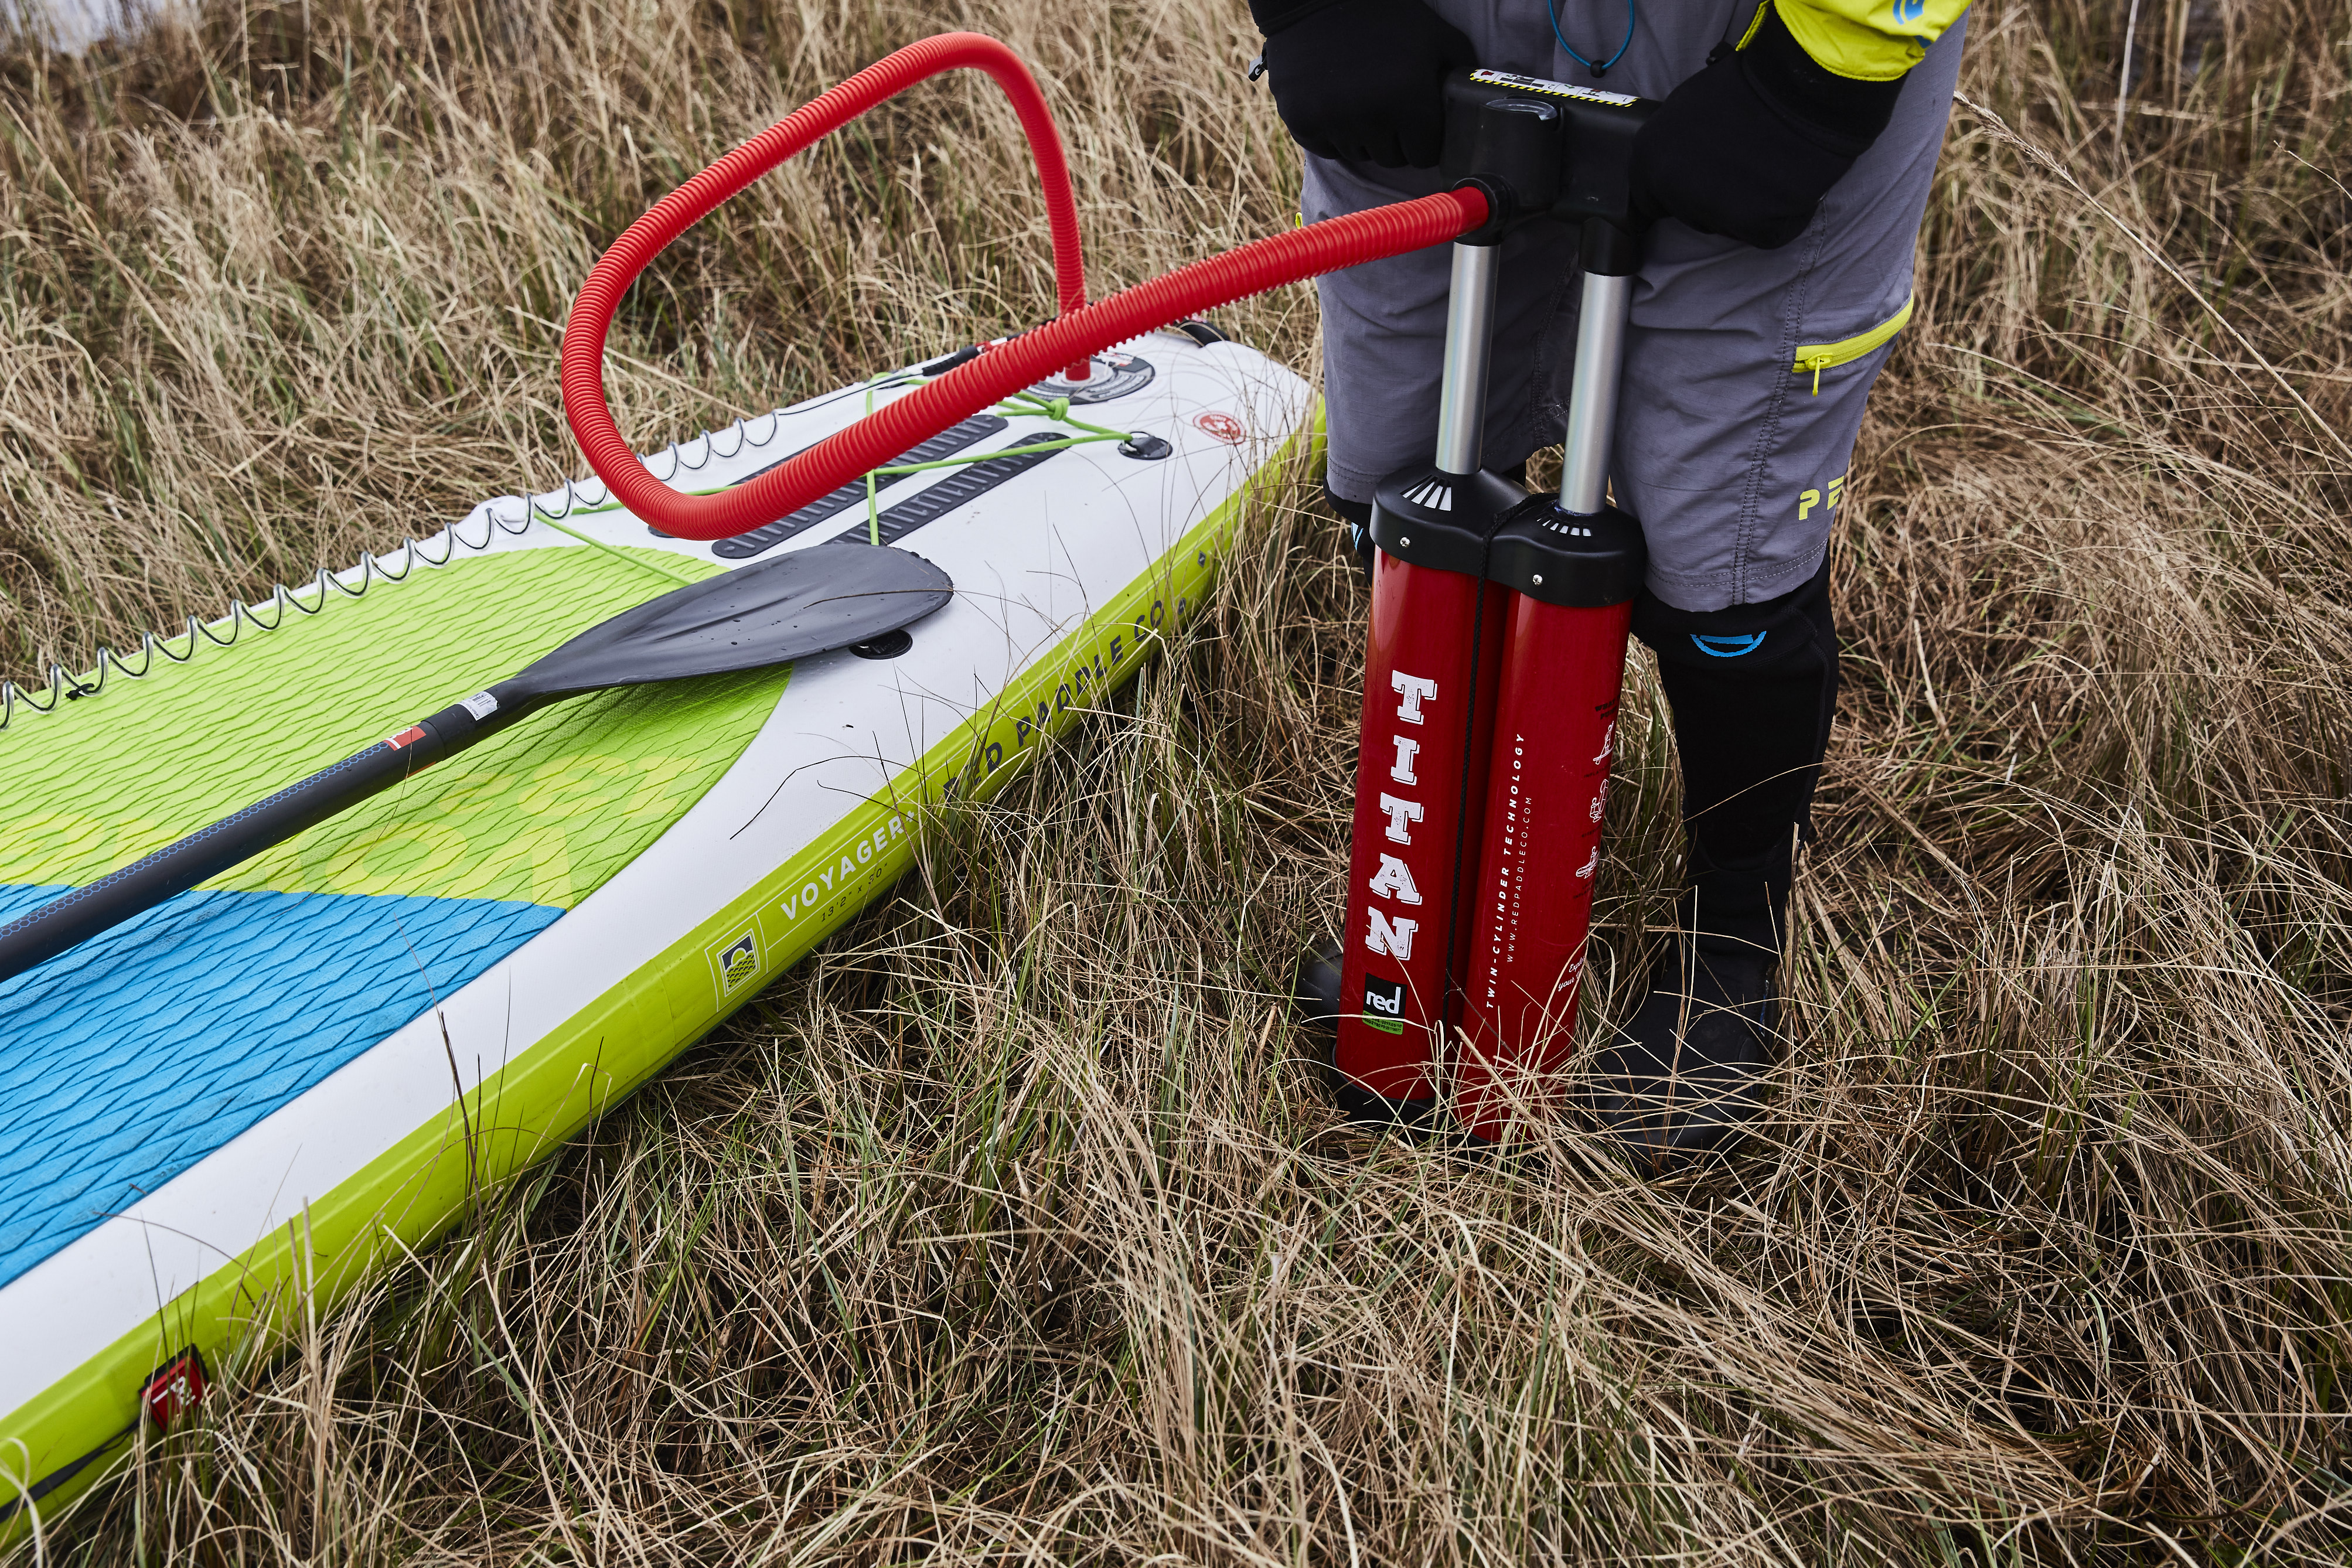 Red Paddle Co Voyager inflatable SUP and Titan pump